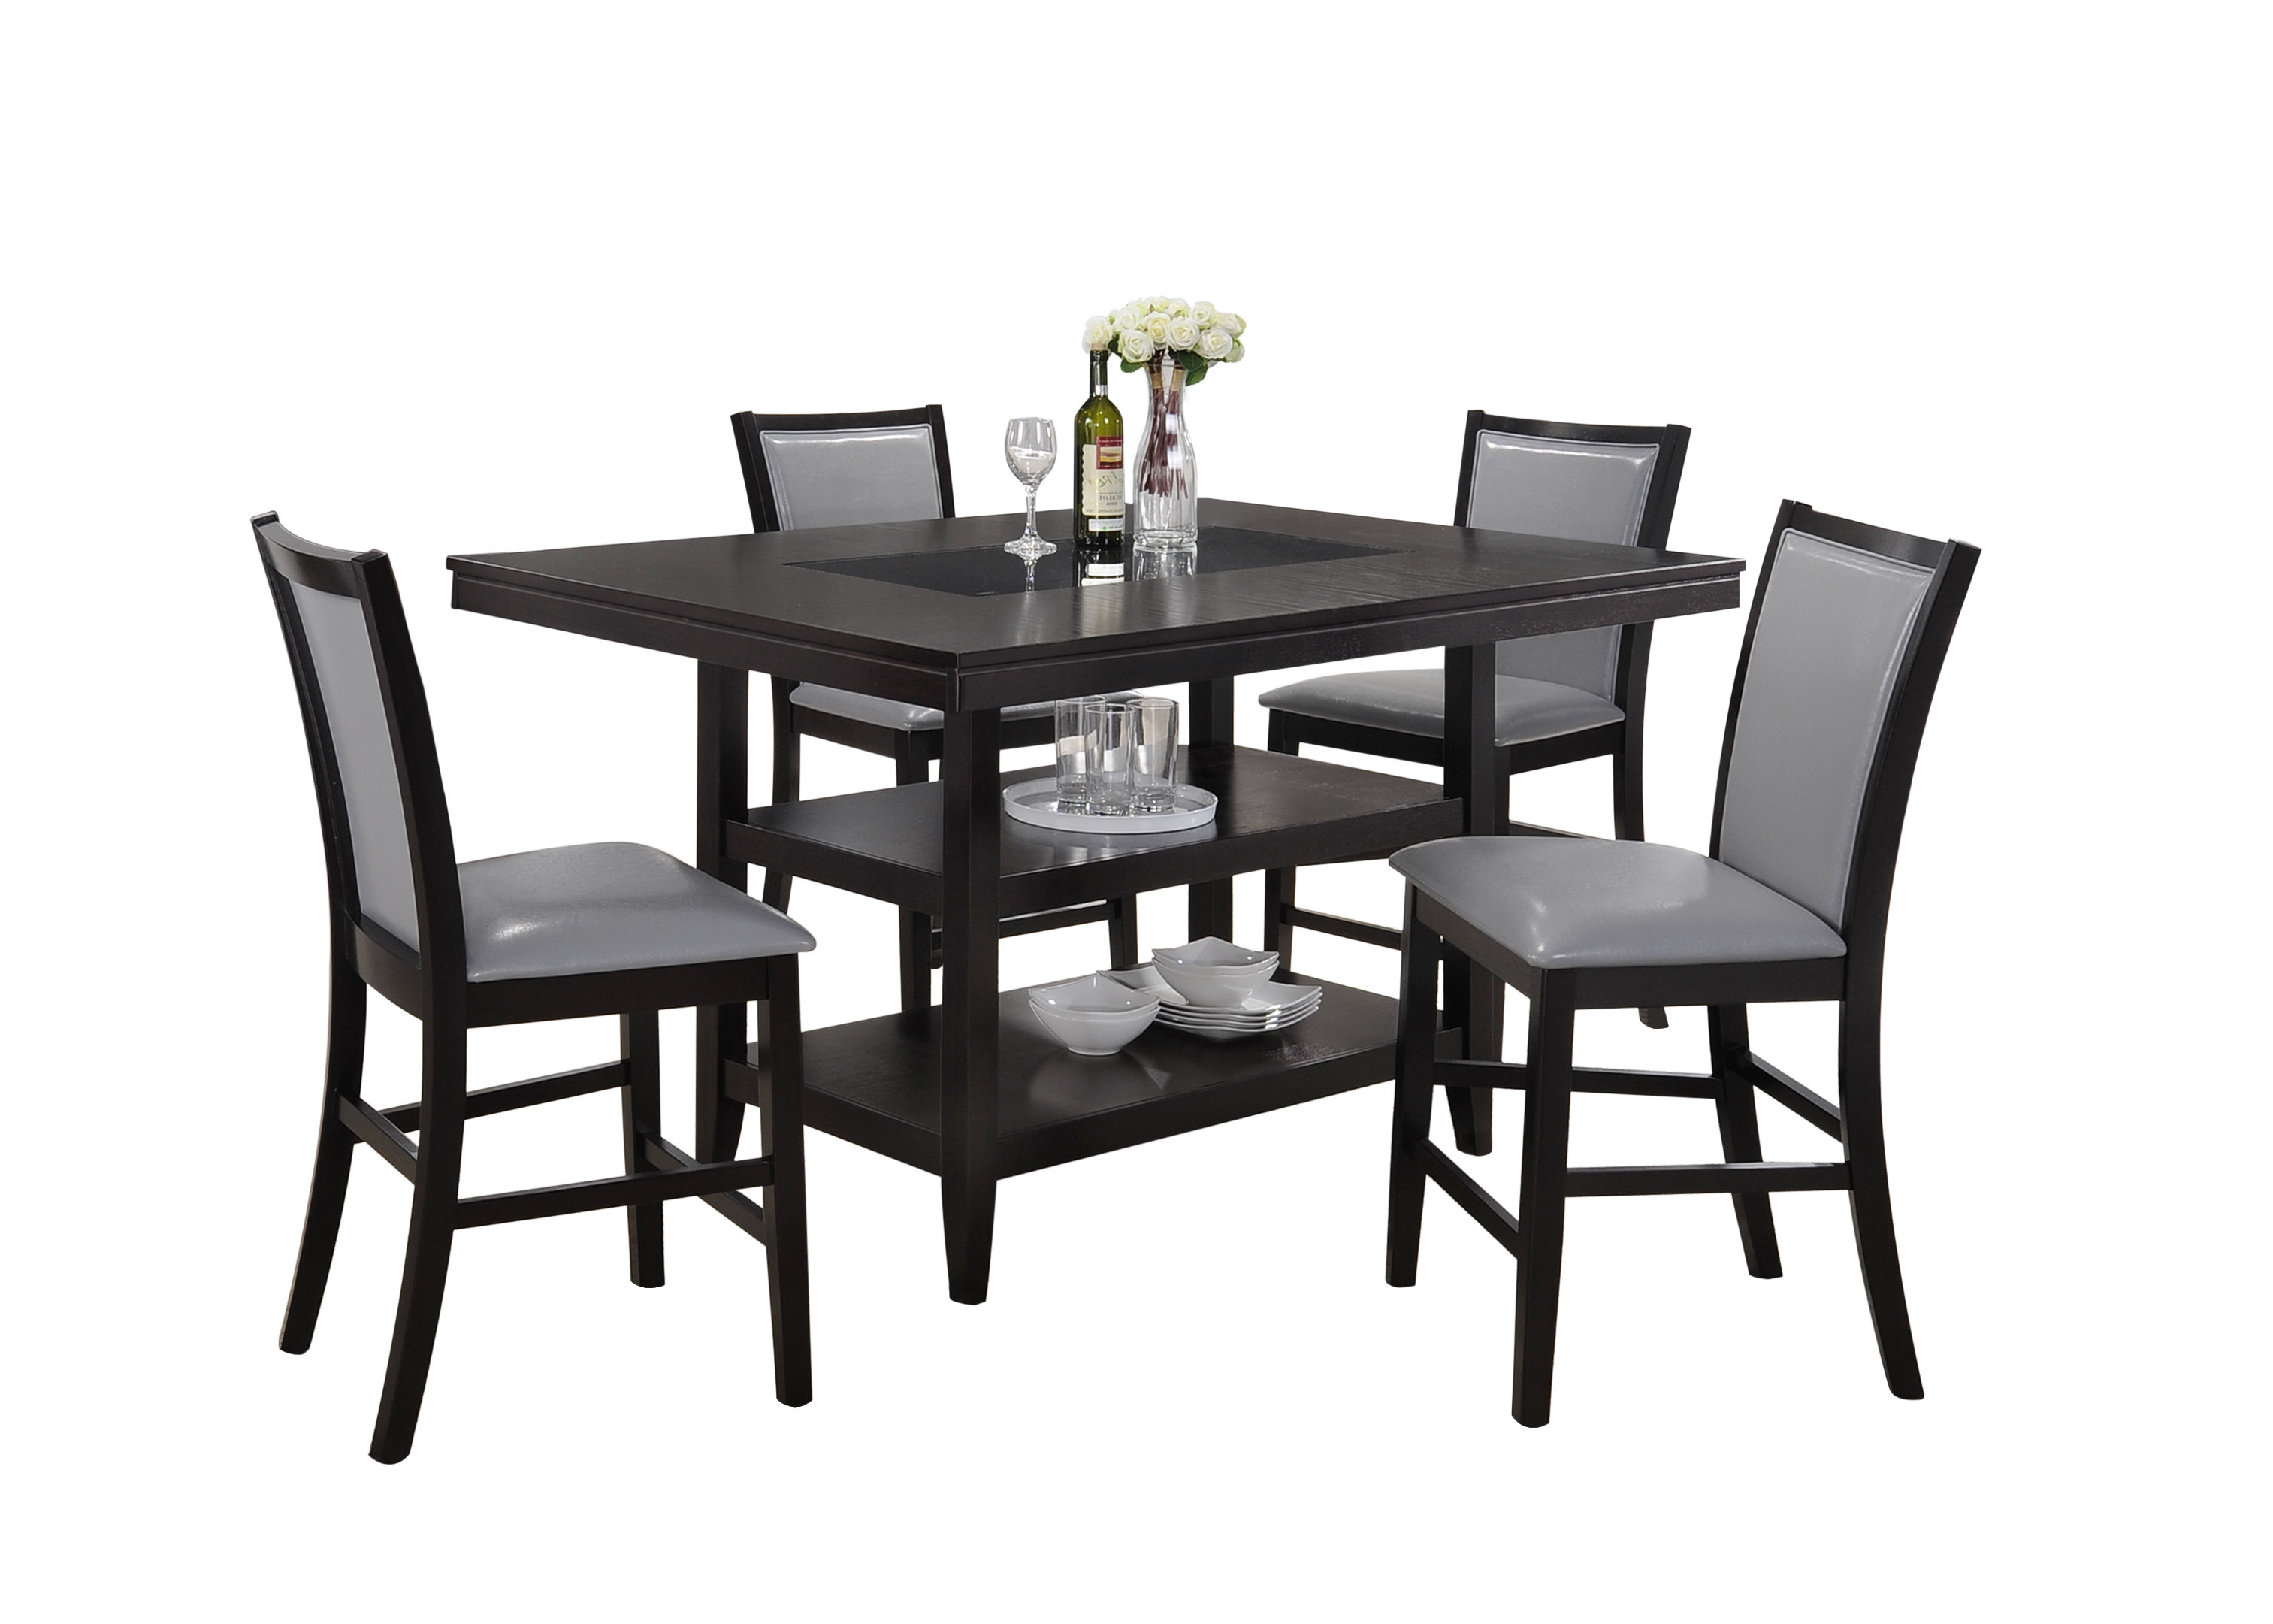 Ashton 5 Piece Dining Set With Regard To Widely Used Goodman 5 Piece Solid Wood Dining Sets (Set Of 5) (View 1 of 20)